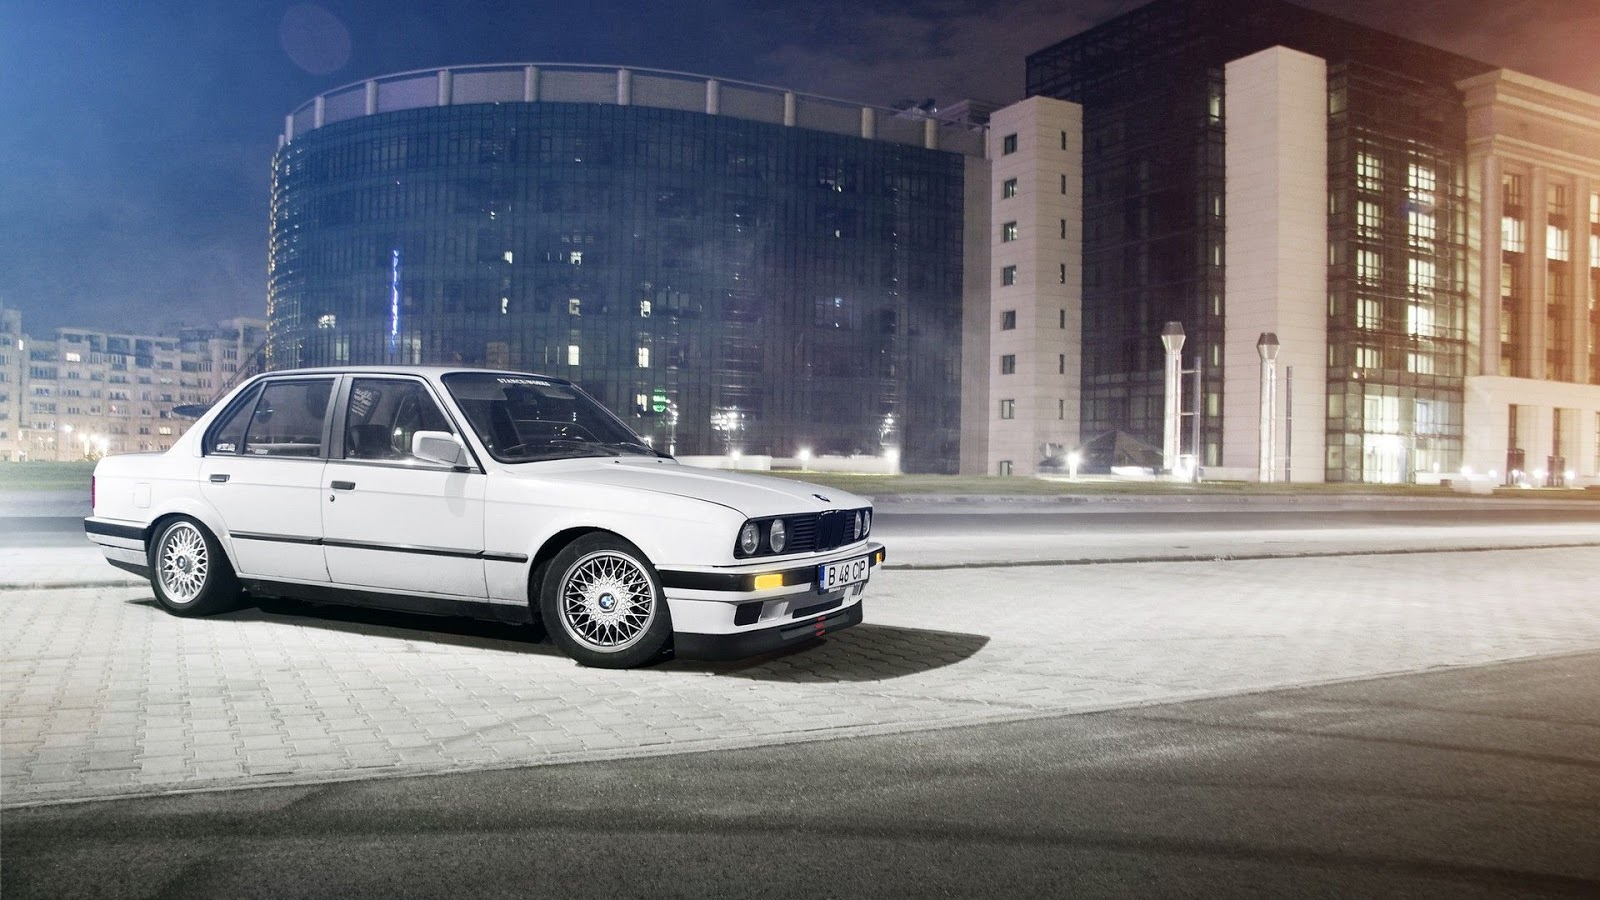 Fond Ecran Bmw E30 Fonds Dcran HD